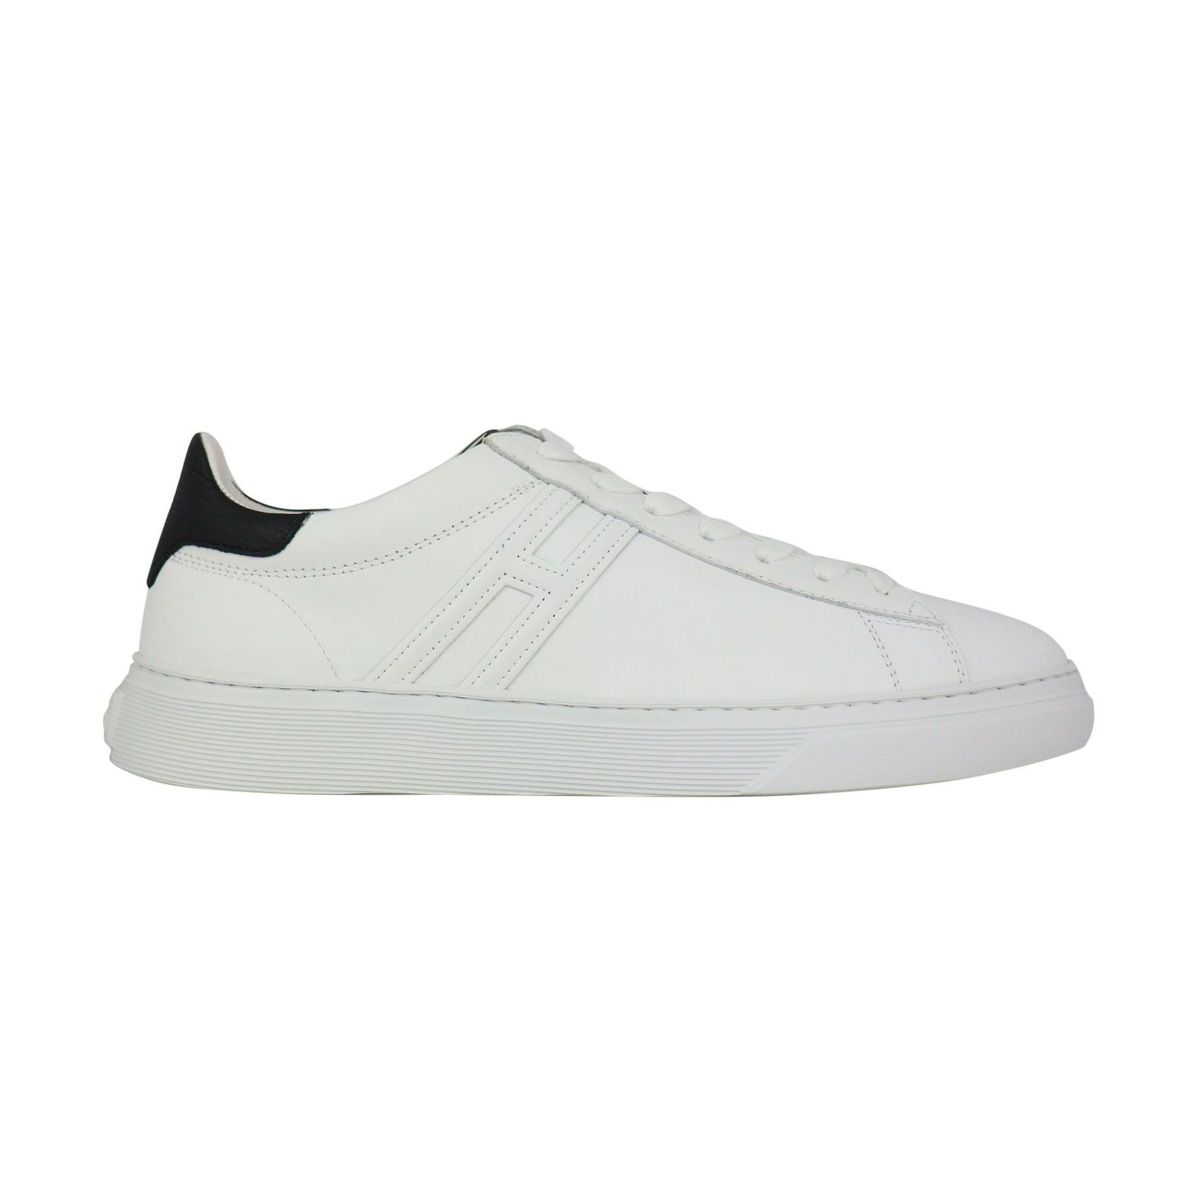 365 leather bottom sneakers White Hogan